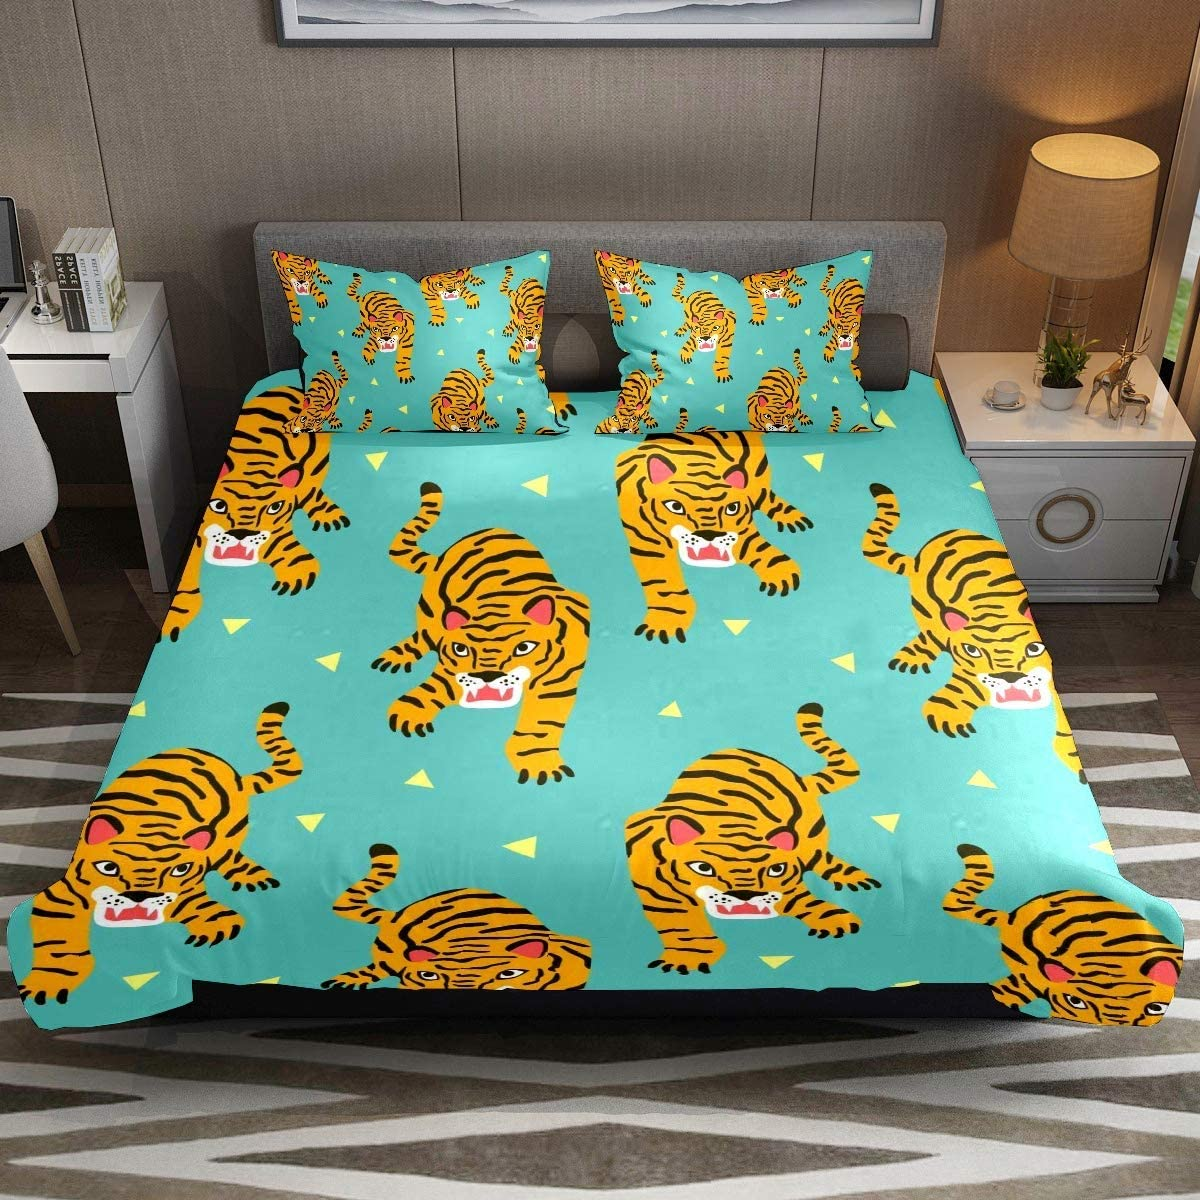 Three-Piece Bed Set Duvet Cover Pillow Outlet ☆ Super Special SALE held Free Shipping B Comfy Soft Stylish Case